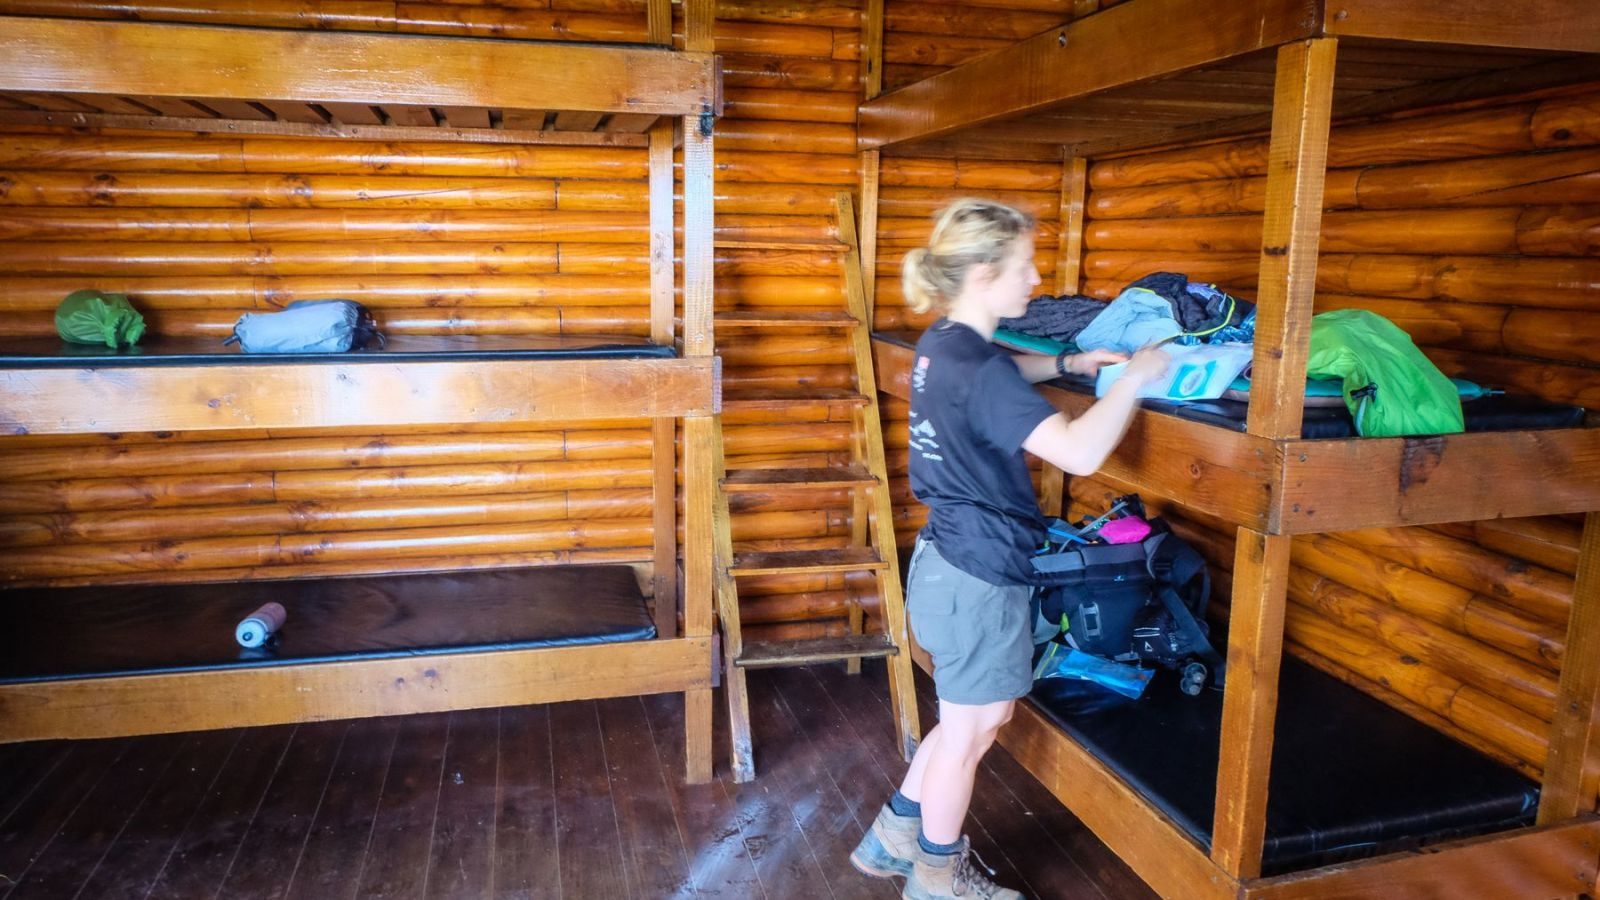 a photo of a hiker inside a overnight hut on the otter trail.